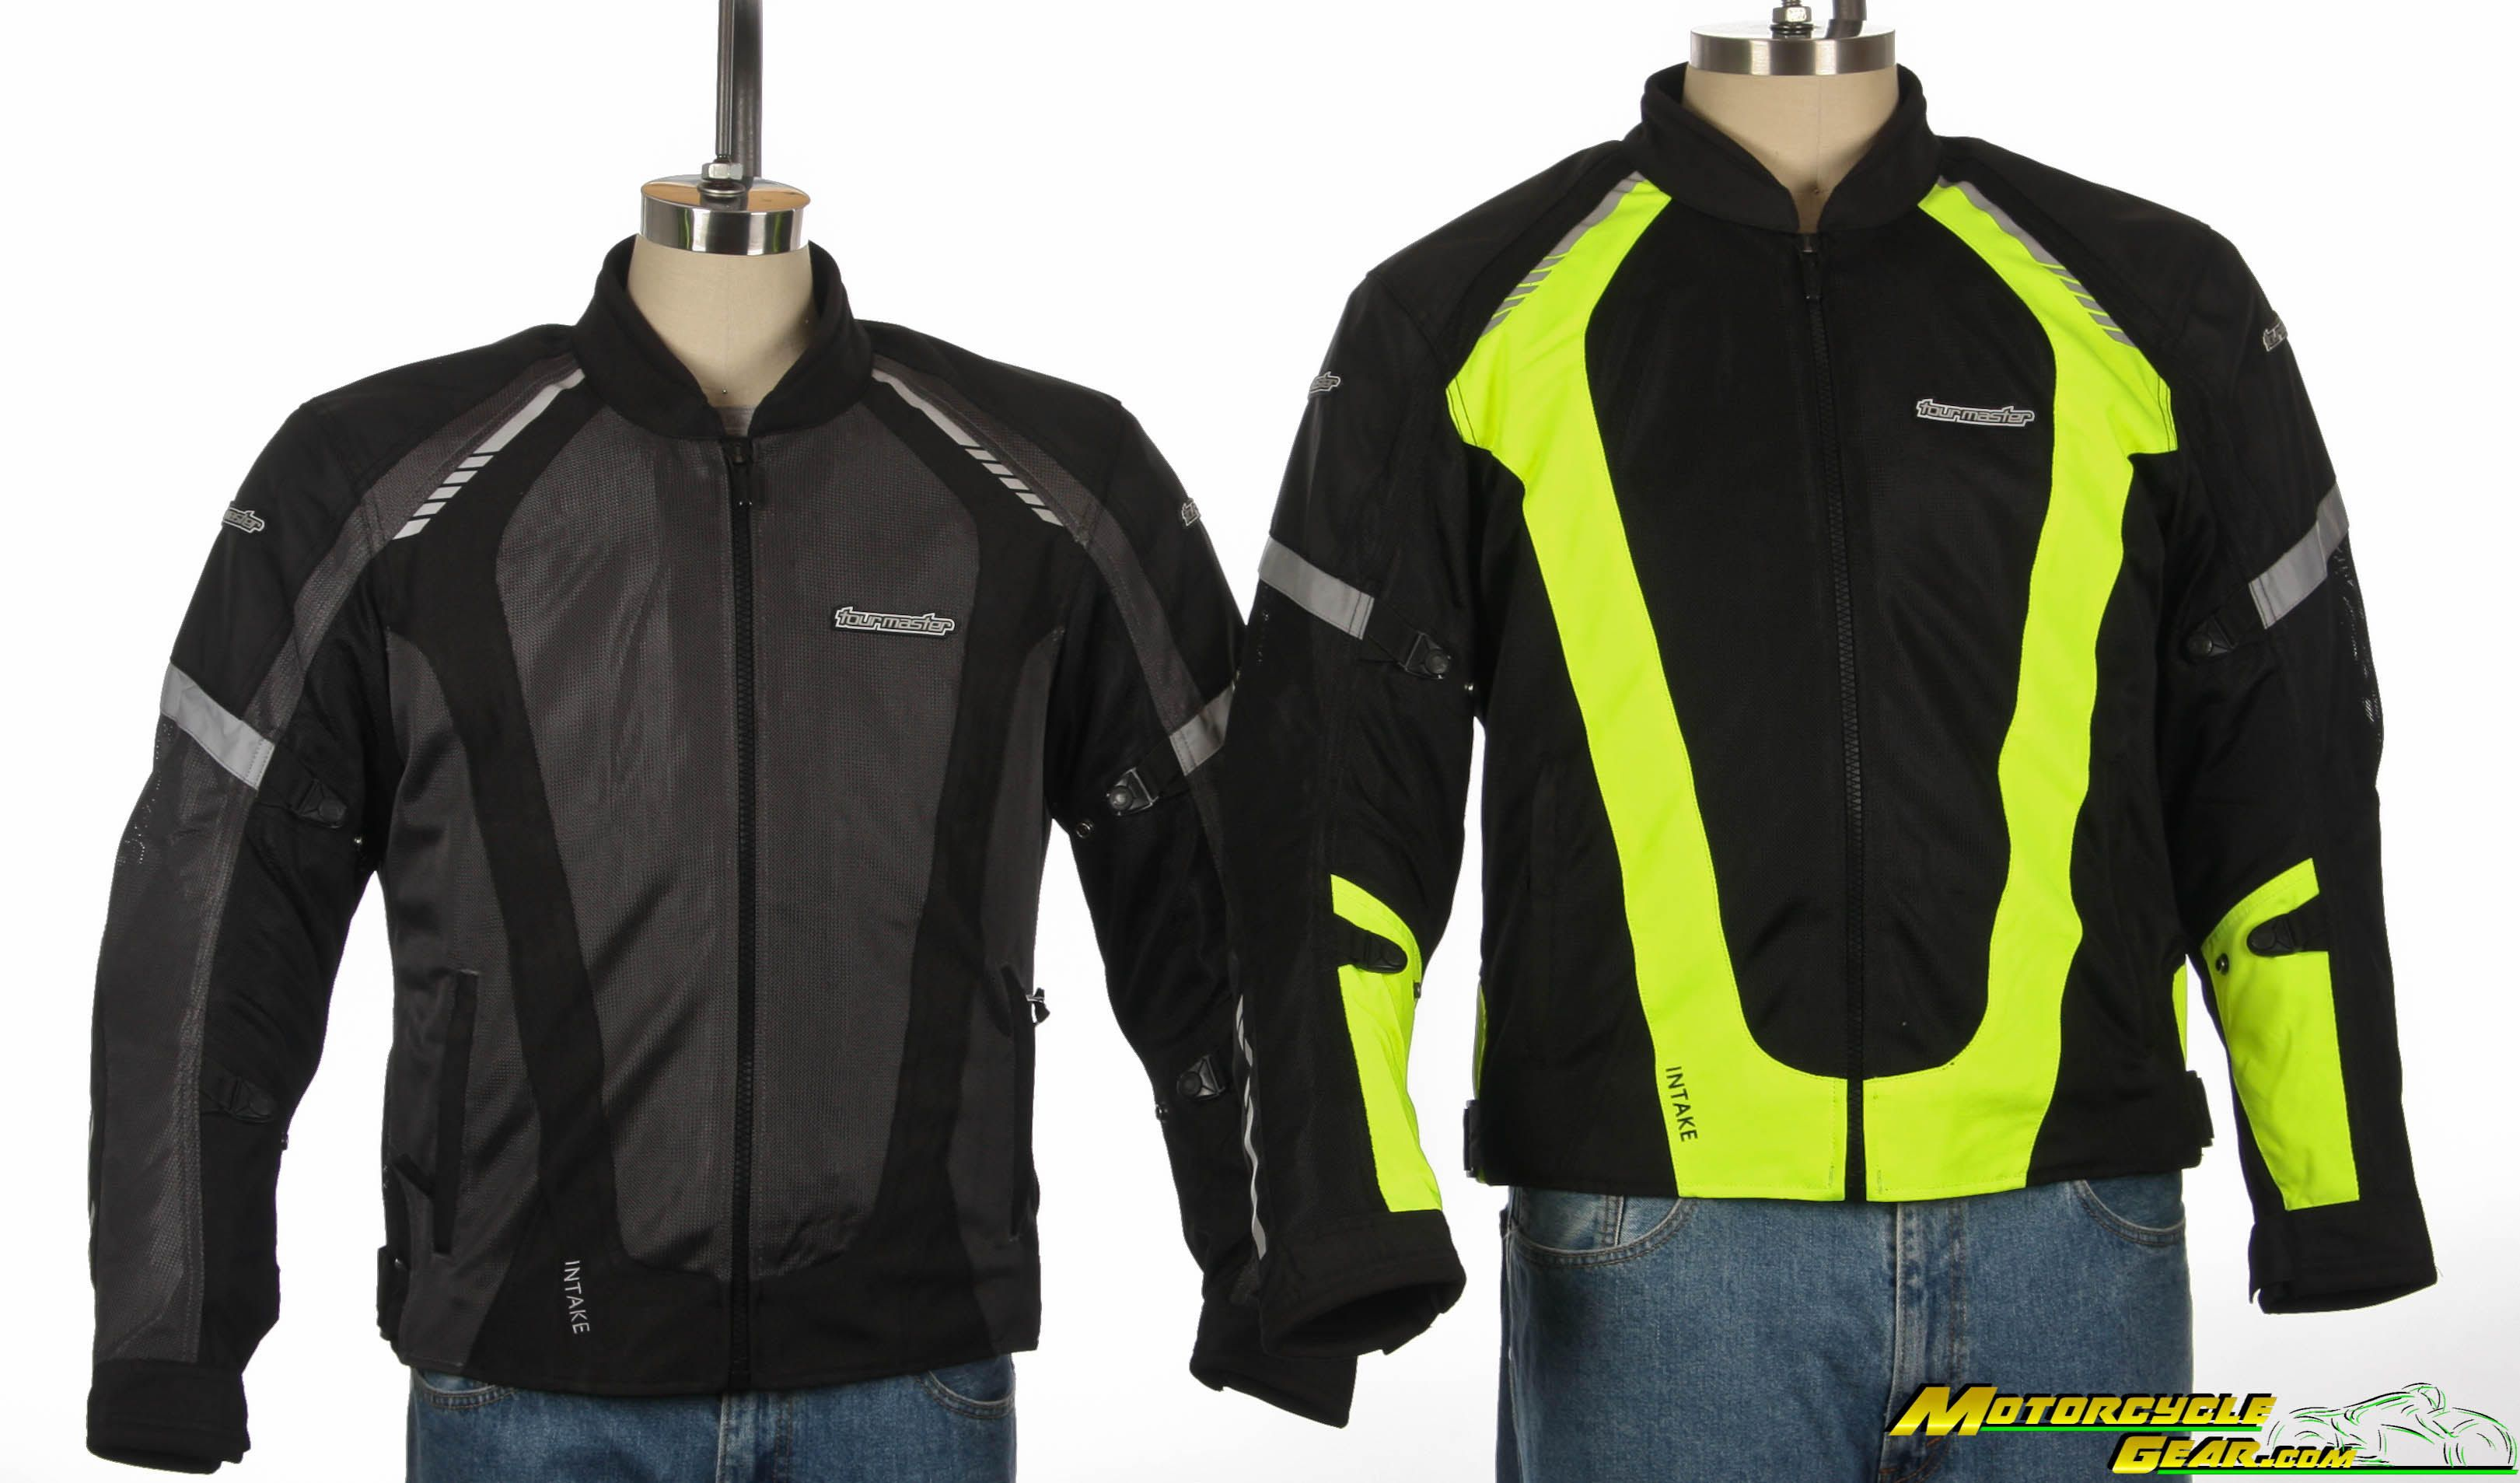 The Intake Air 5.0 jacket from Tour Master is a great